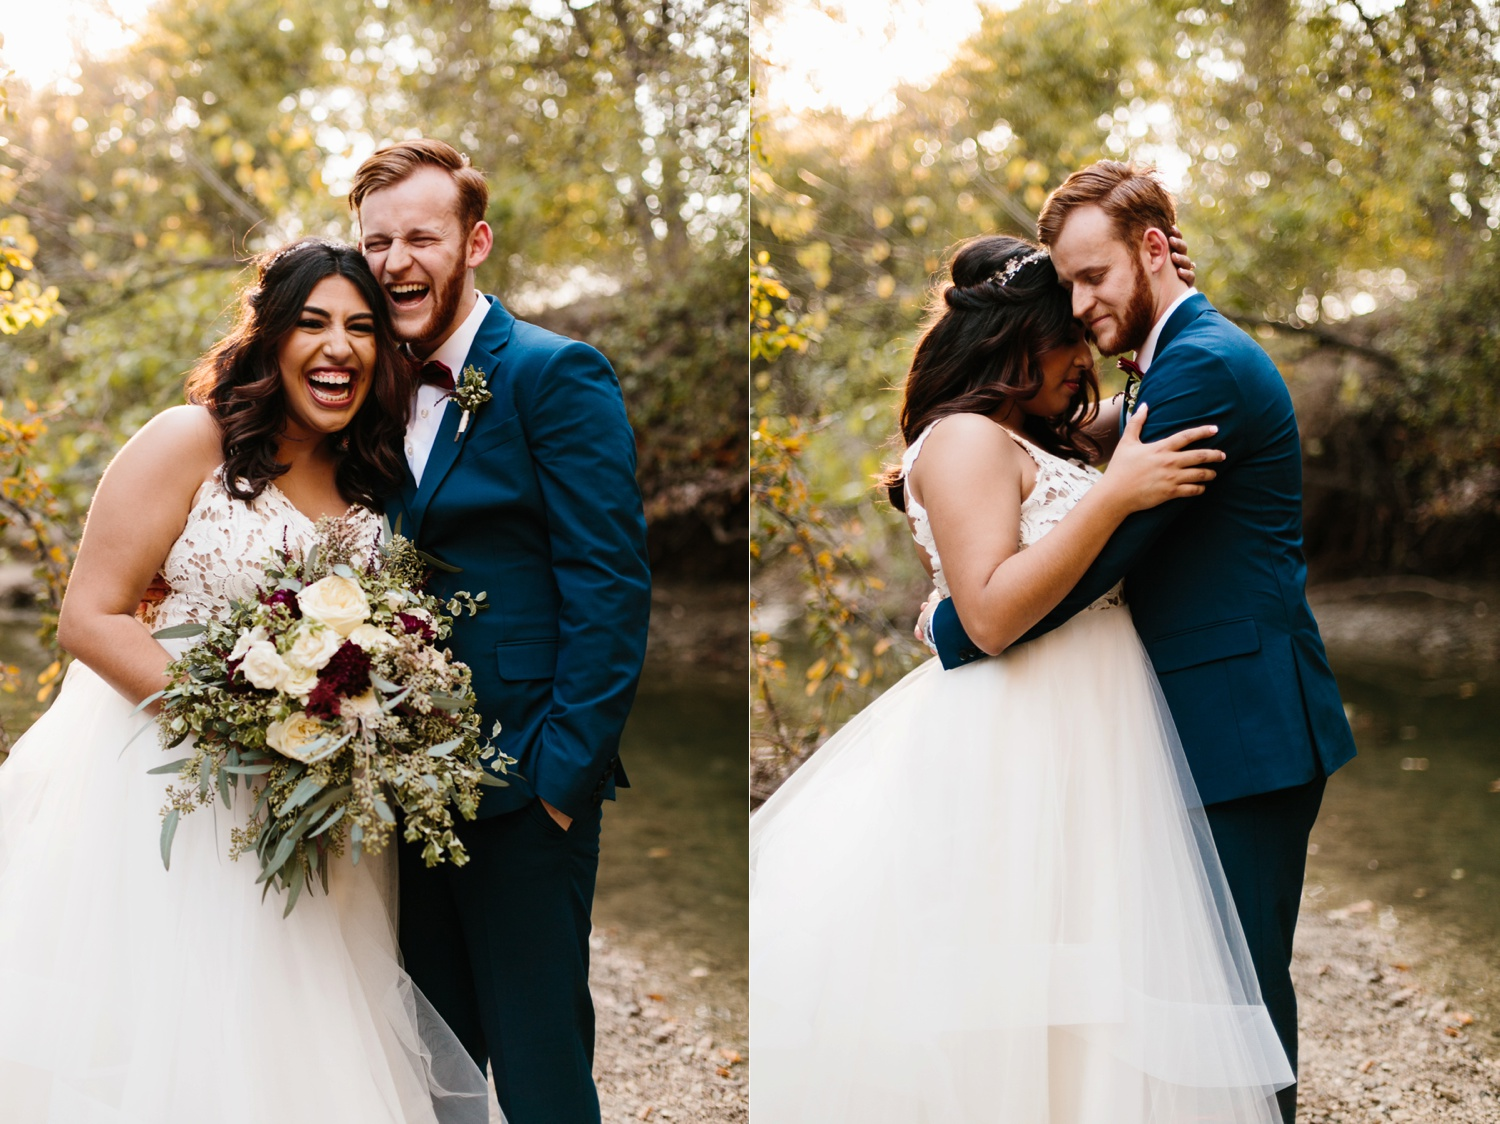 Grant + Lysette | a vibrant, deep burgundy and navy, and mixed metals wedding at Hidden Pines Chapel by North Texas Wedding Photographer Rachel Meagan Photography 210